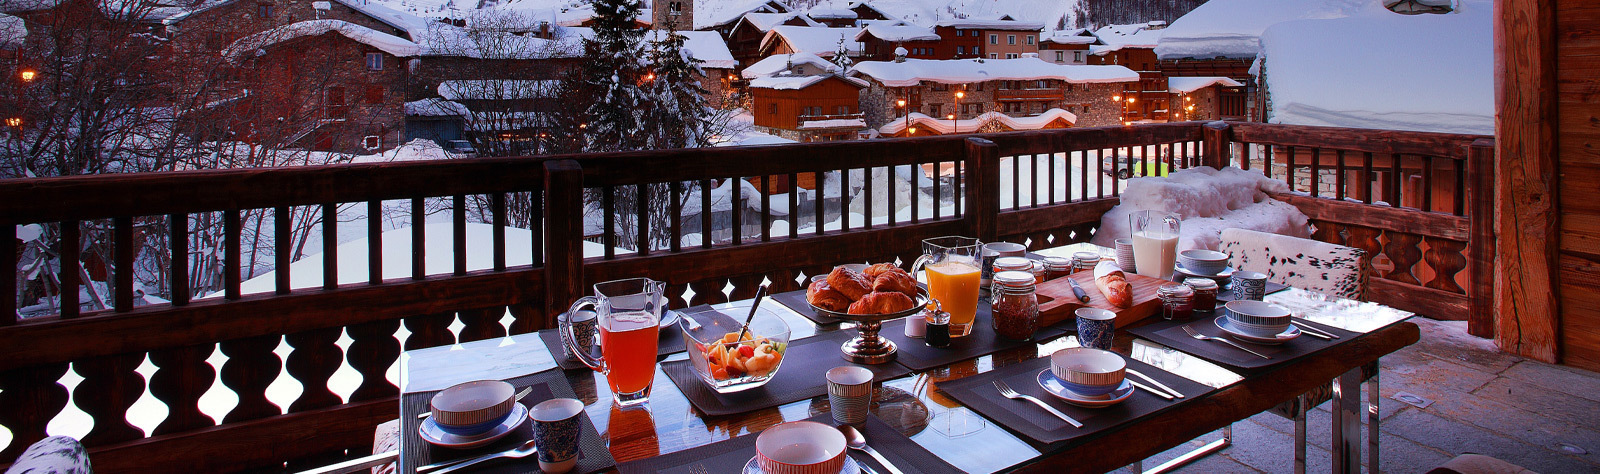 Megeve accommodations